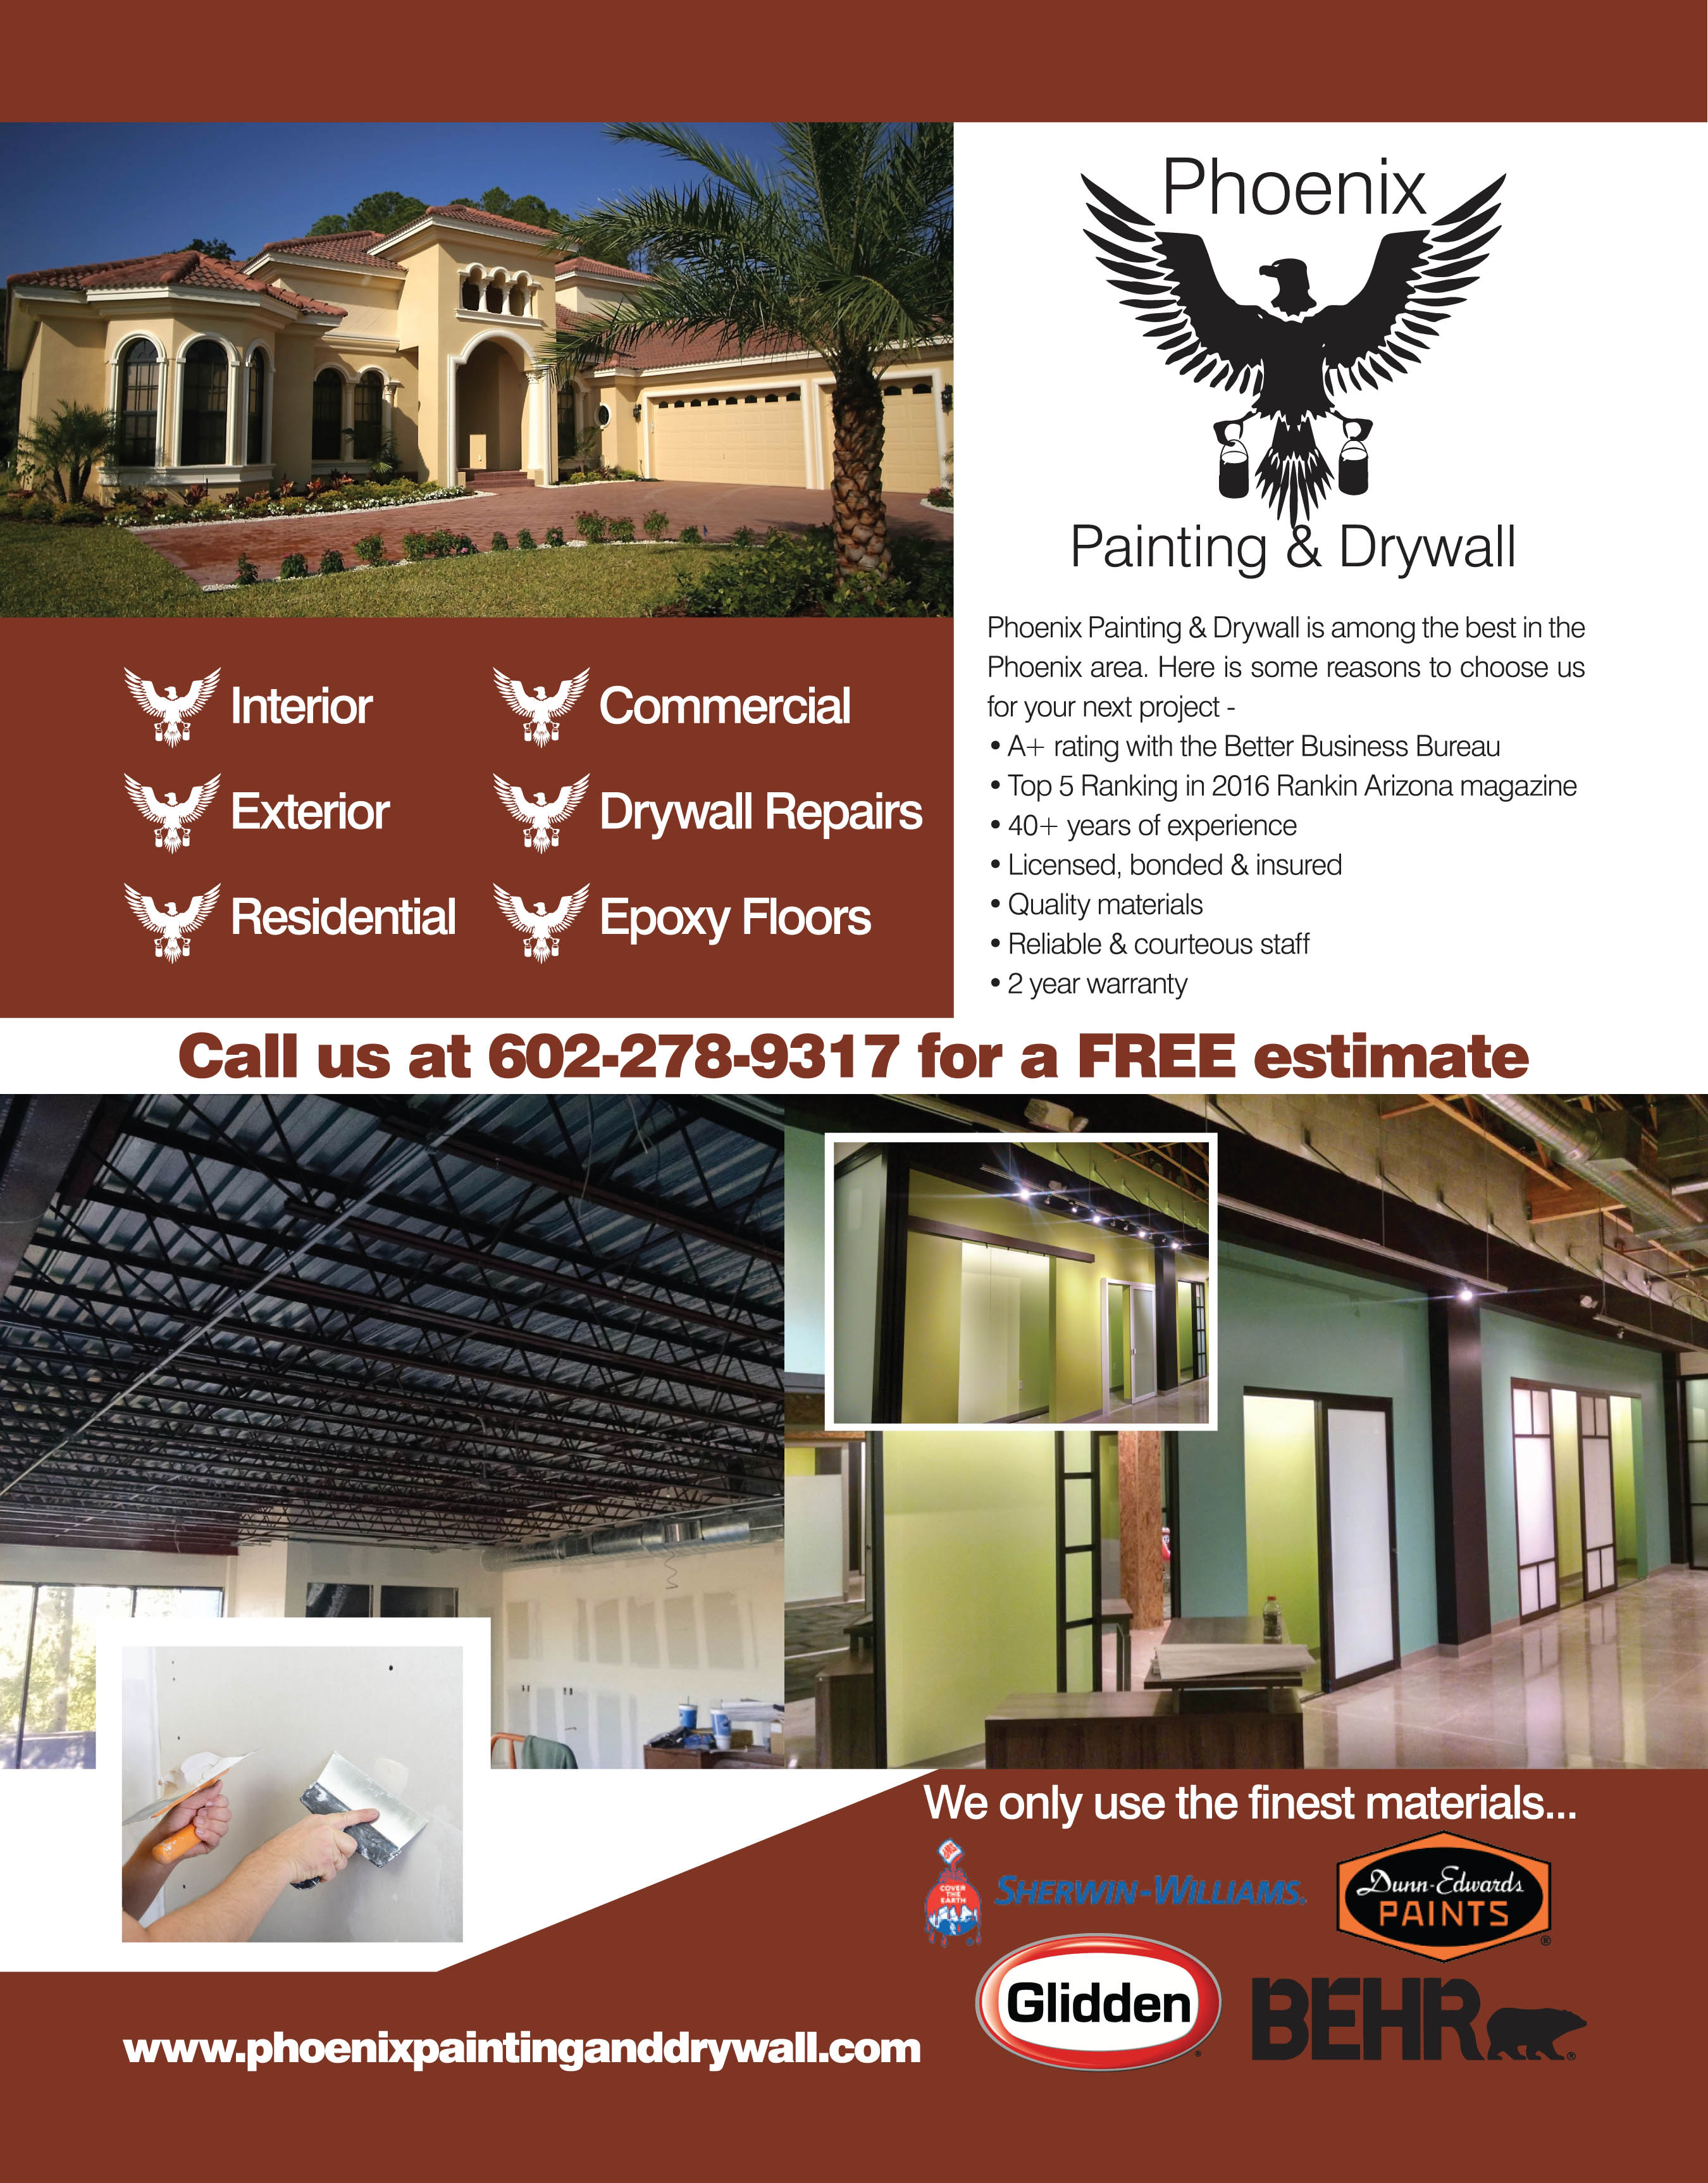 Painting residential and commercial houses and businesses Ahwatukee, Avondale, Scottsdale, Gilbert, Chandler, Laveen, Glendale, Carefree, Sun City, Peoria, Goodyear, Youngtown, El Mirage, Phoenix, Tempe, Litchfield park , Surprise, Waddell, Mesa, Anthem